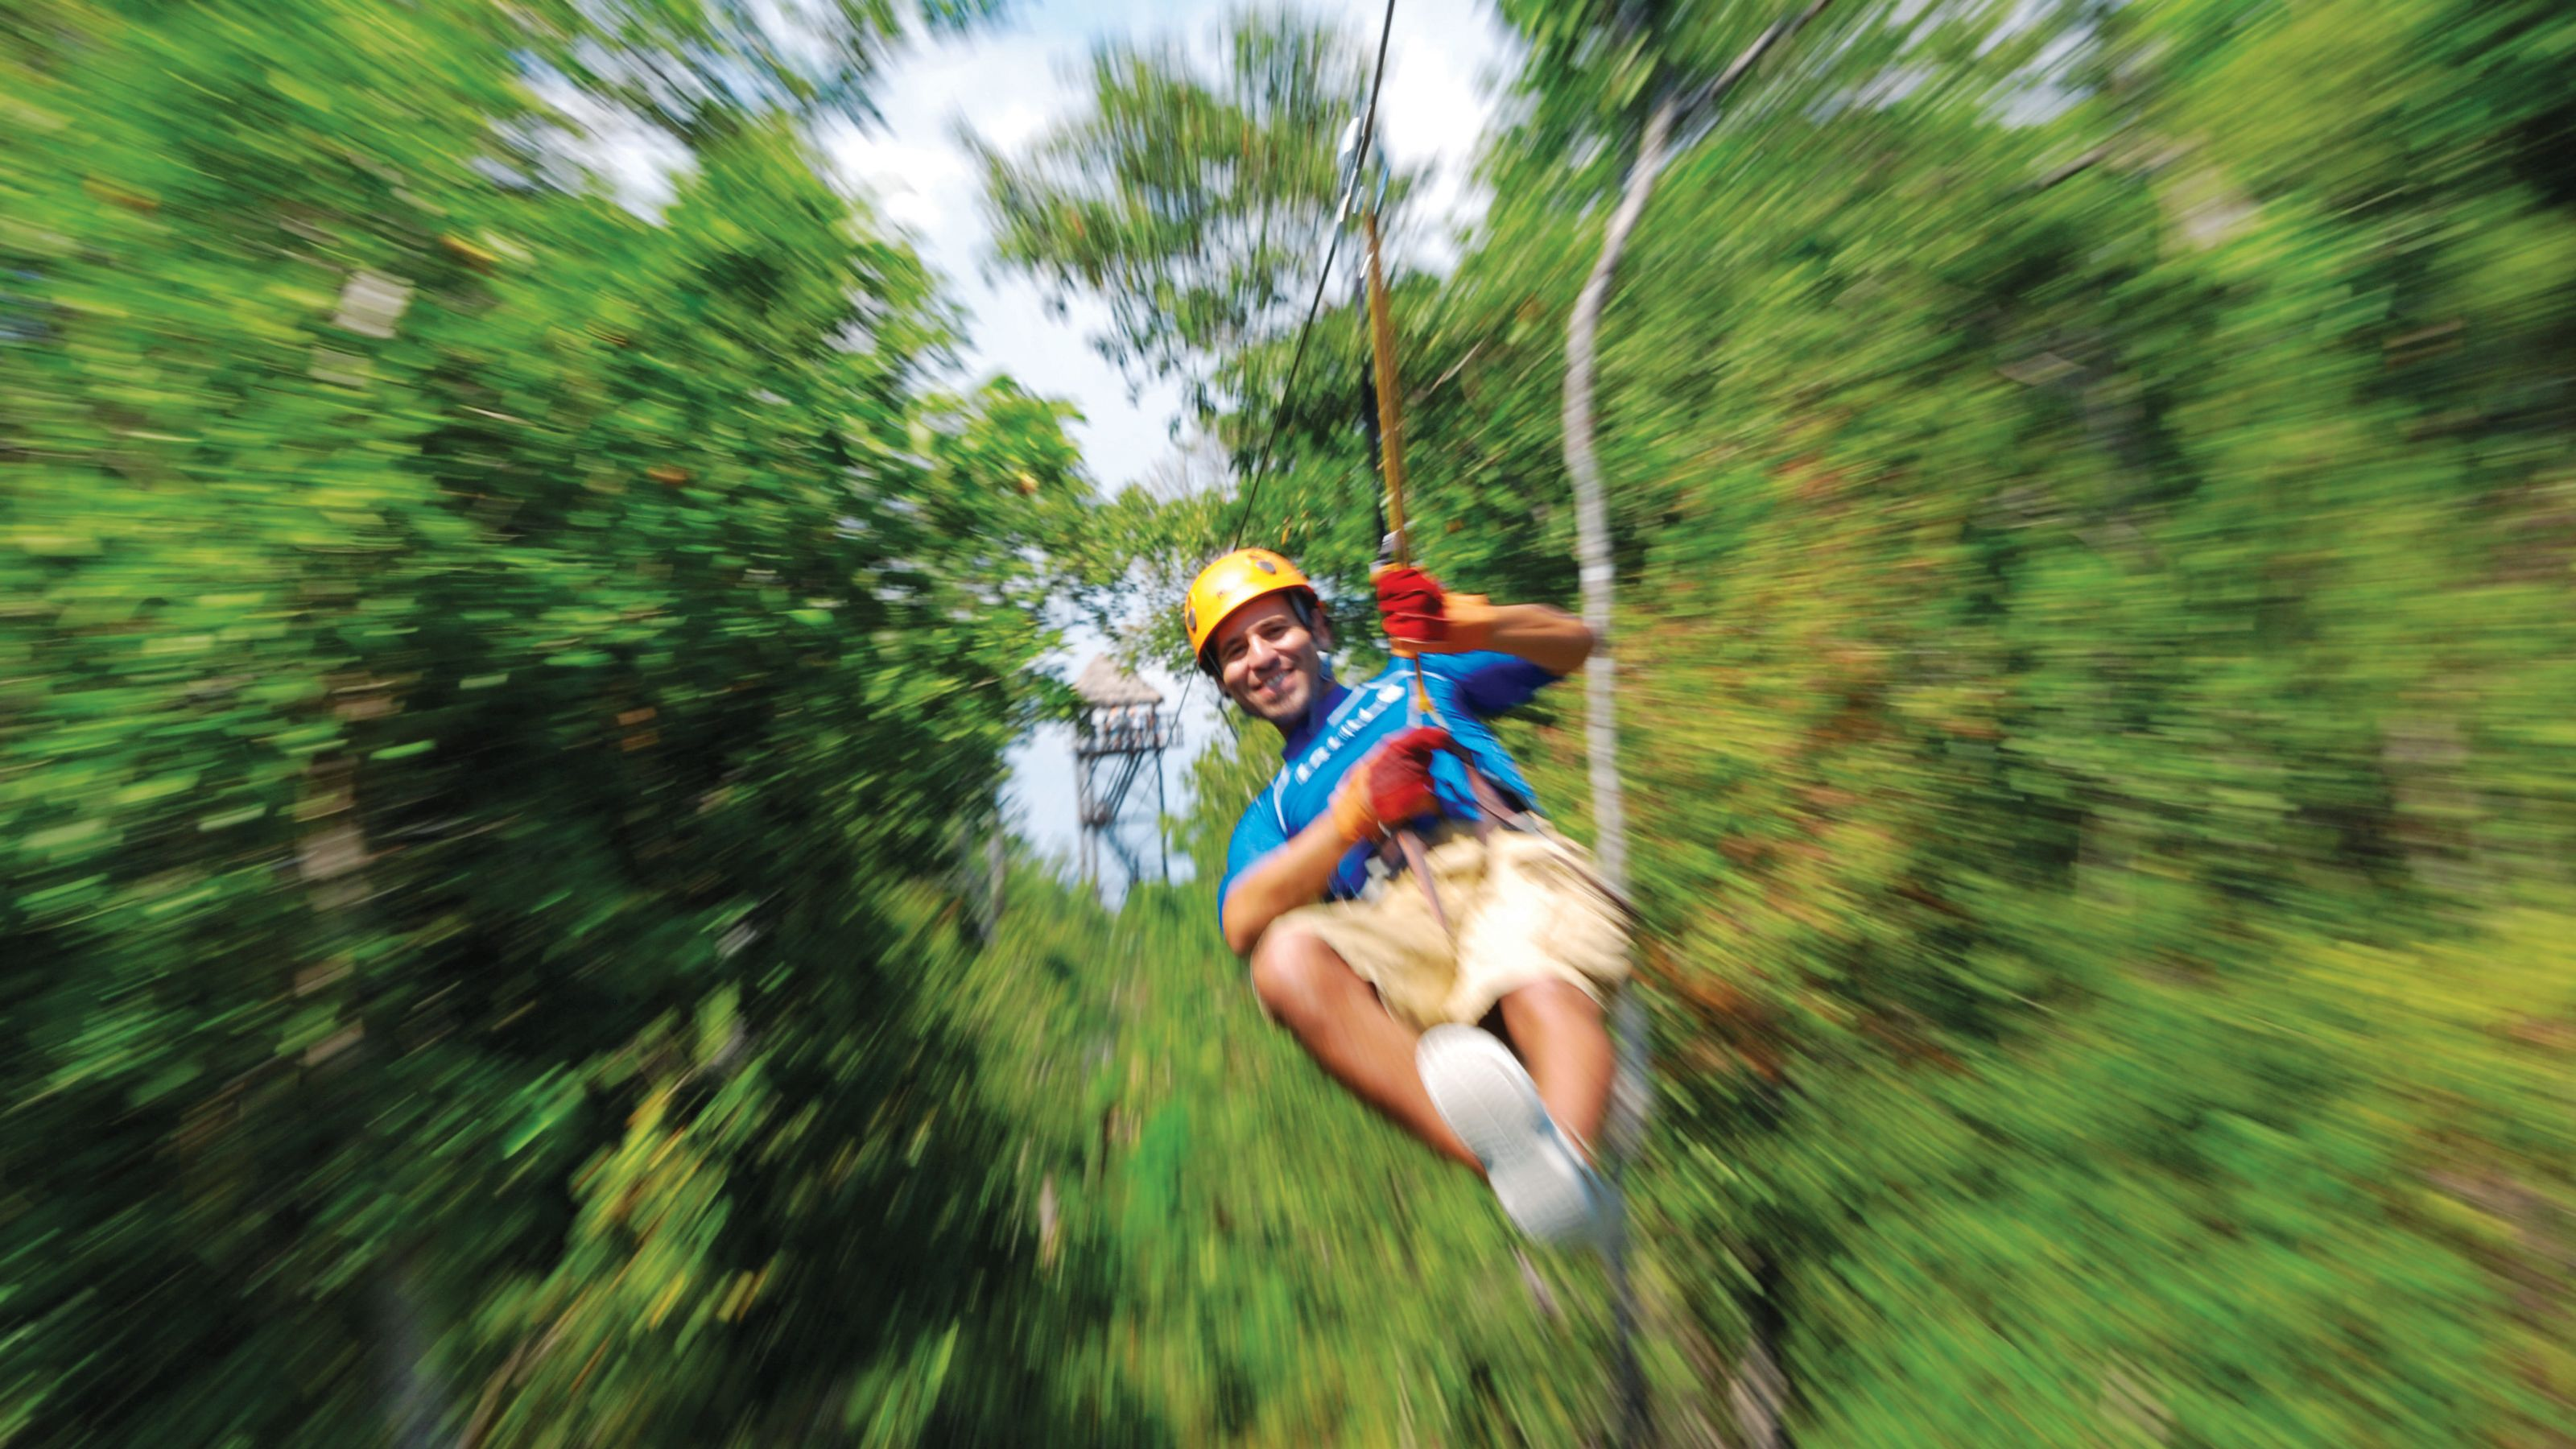 Ziplining through the trees in Cauncun